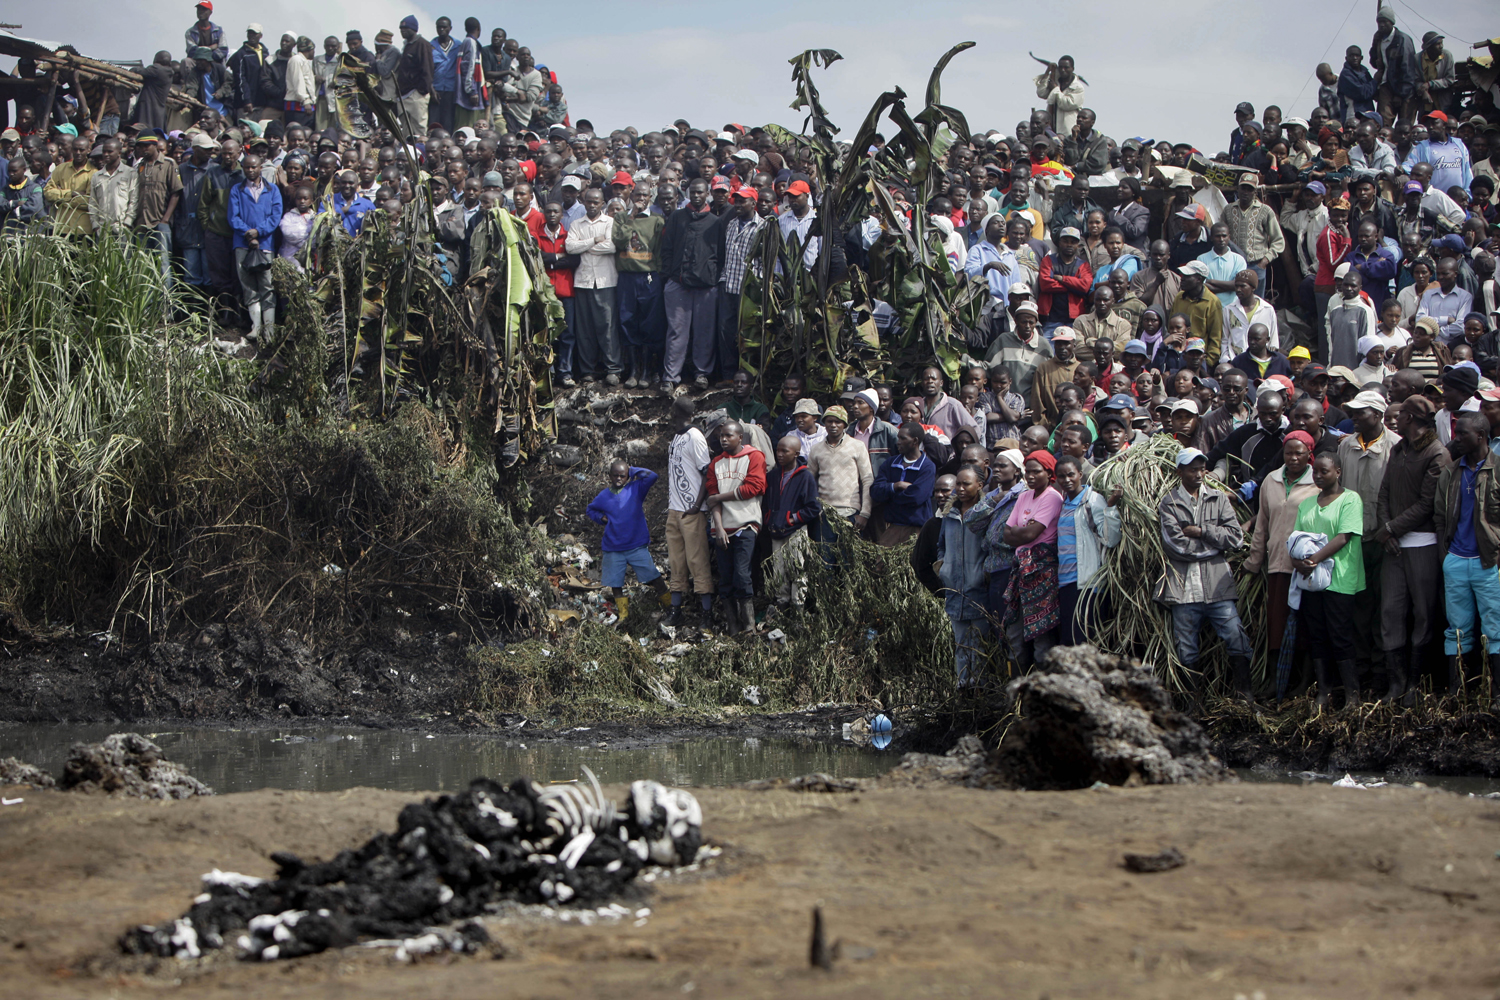 September 12, 2011. Residents of the area look on from across a small river at bodies of victims lying on the other side, after a pipeline explosion in Nairobi, Kenya. A leaking gasoline pipeline in Kenya's capital exploded turning part of a slum into an inferno in which scores of people were killed and more than 100 injuried.